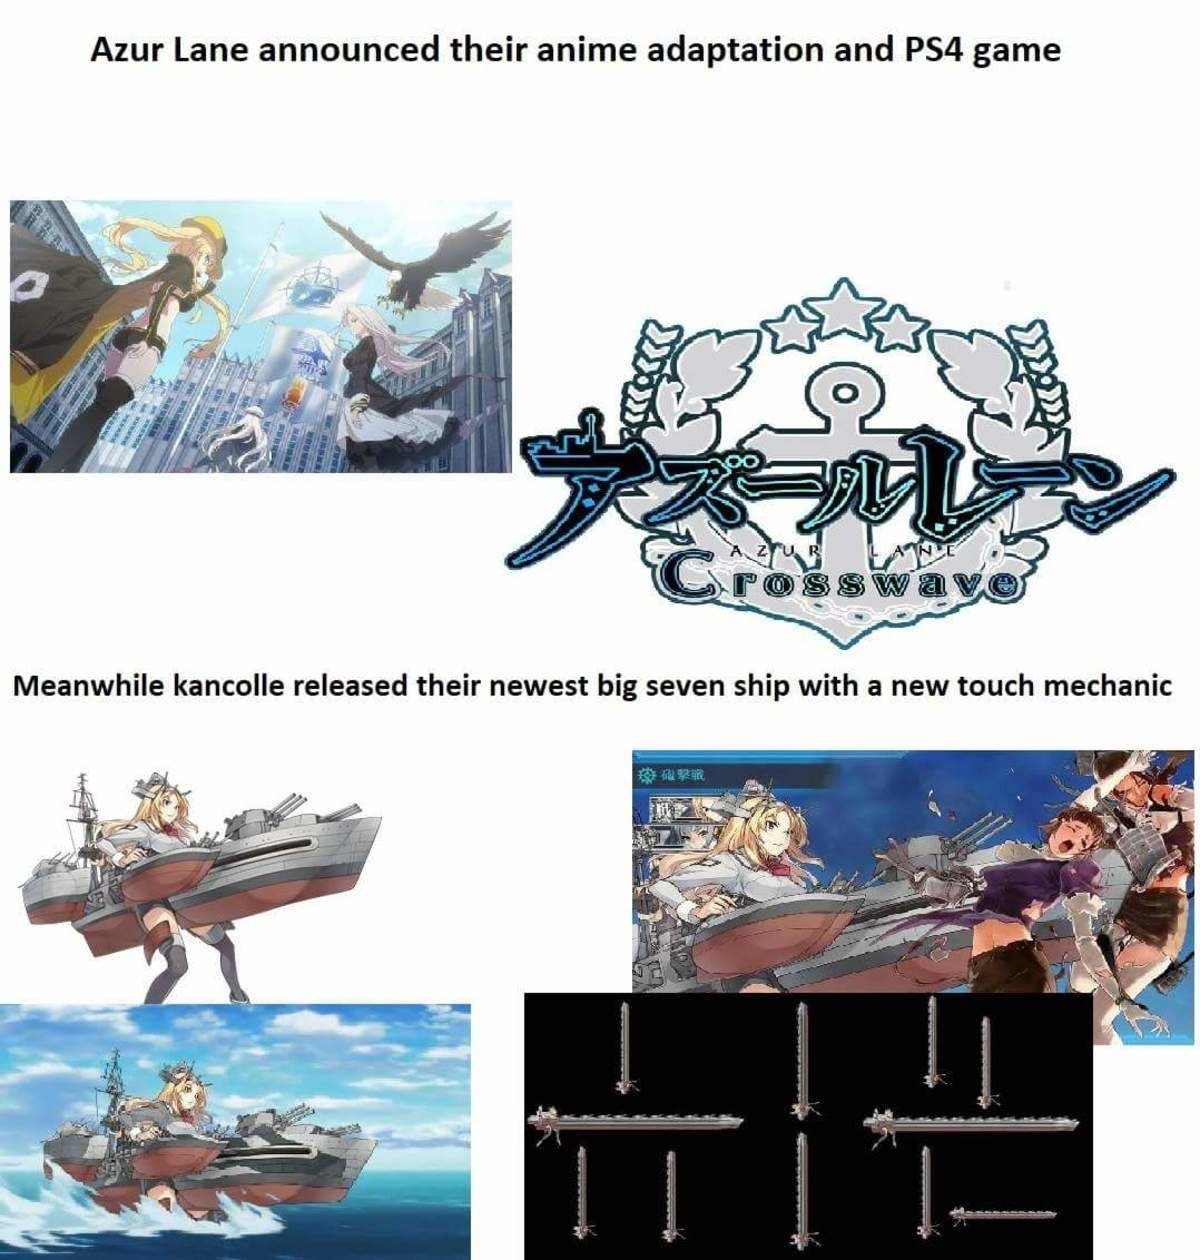 Kancolle vs Azur Lane. Futabari KC Nelson when? join list: Kancolle (259 subs)Mention Clicks: 10636Msgs Sent: 37416Mention History join list:. Don't forget that Gotland also got released as well join list: SnortingVideogamesMention History join list: